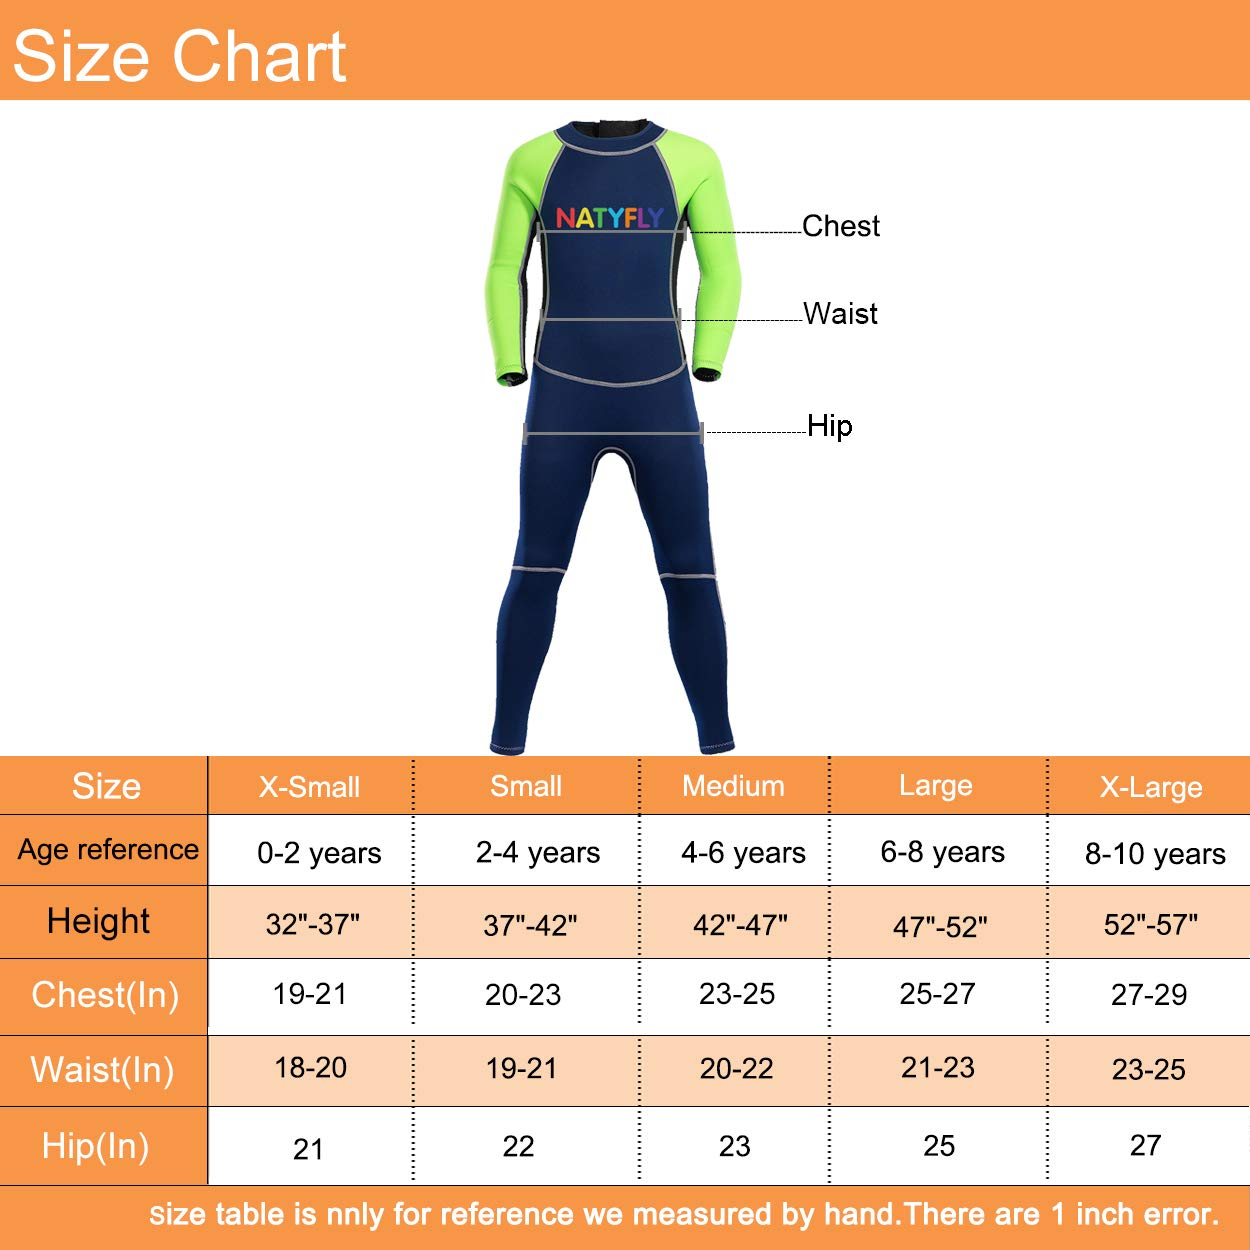 NATYFLY Neoprene Wetsuits for Kids Boys Girls Back Zipper One Piece Swimsuit UV Protection-Brand (Green-2MM-Long Sleeve, M-for Height 42''-47'')